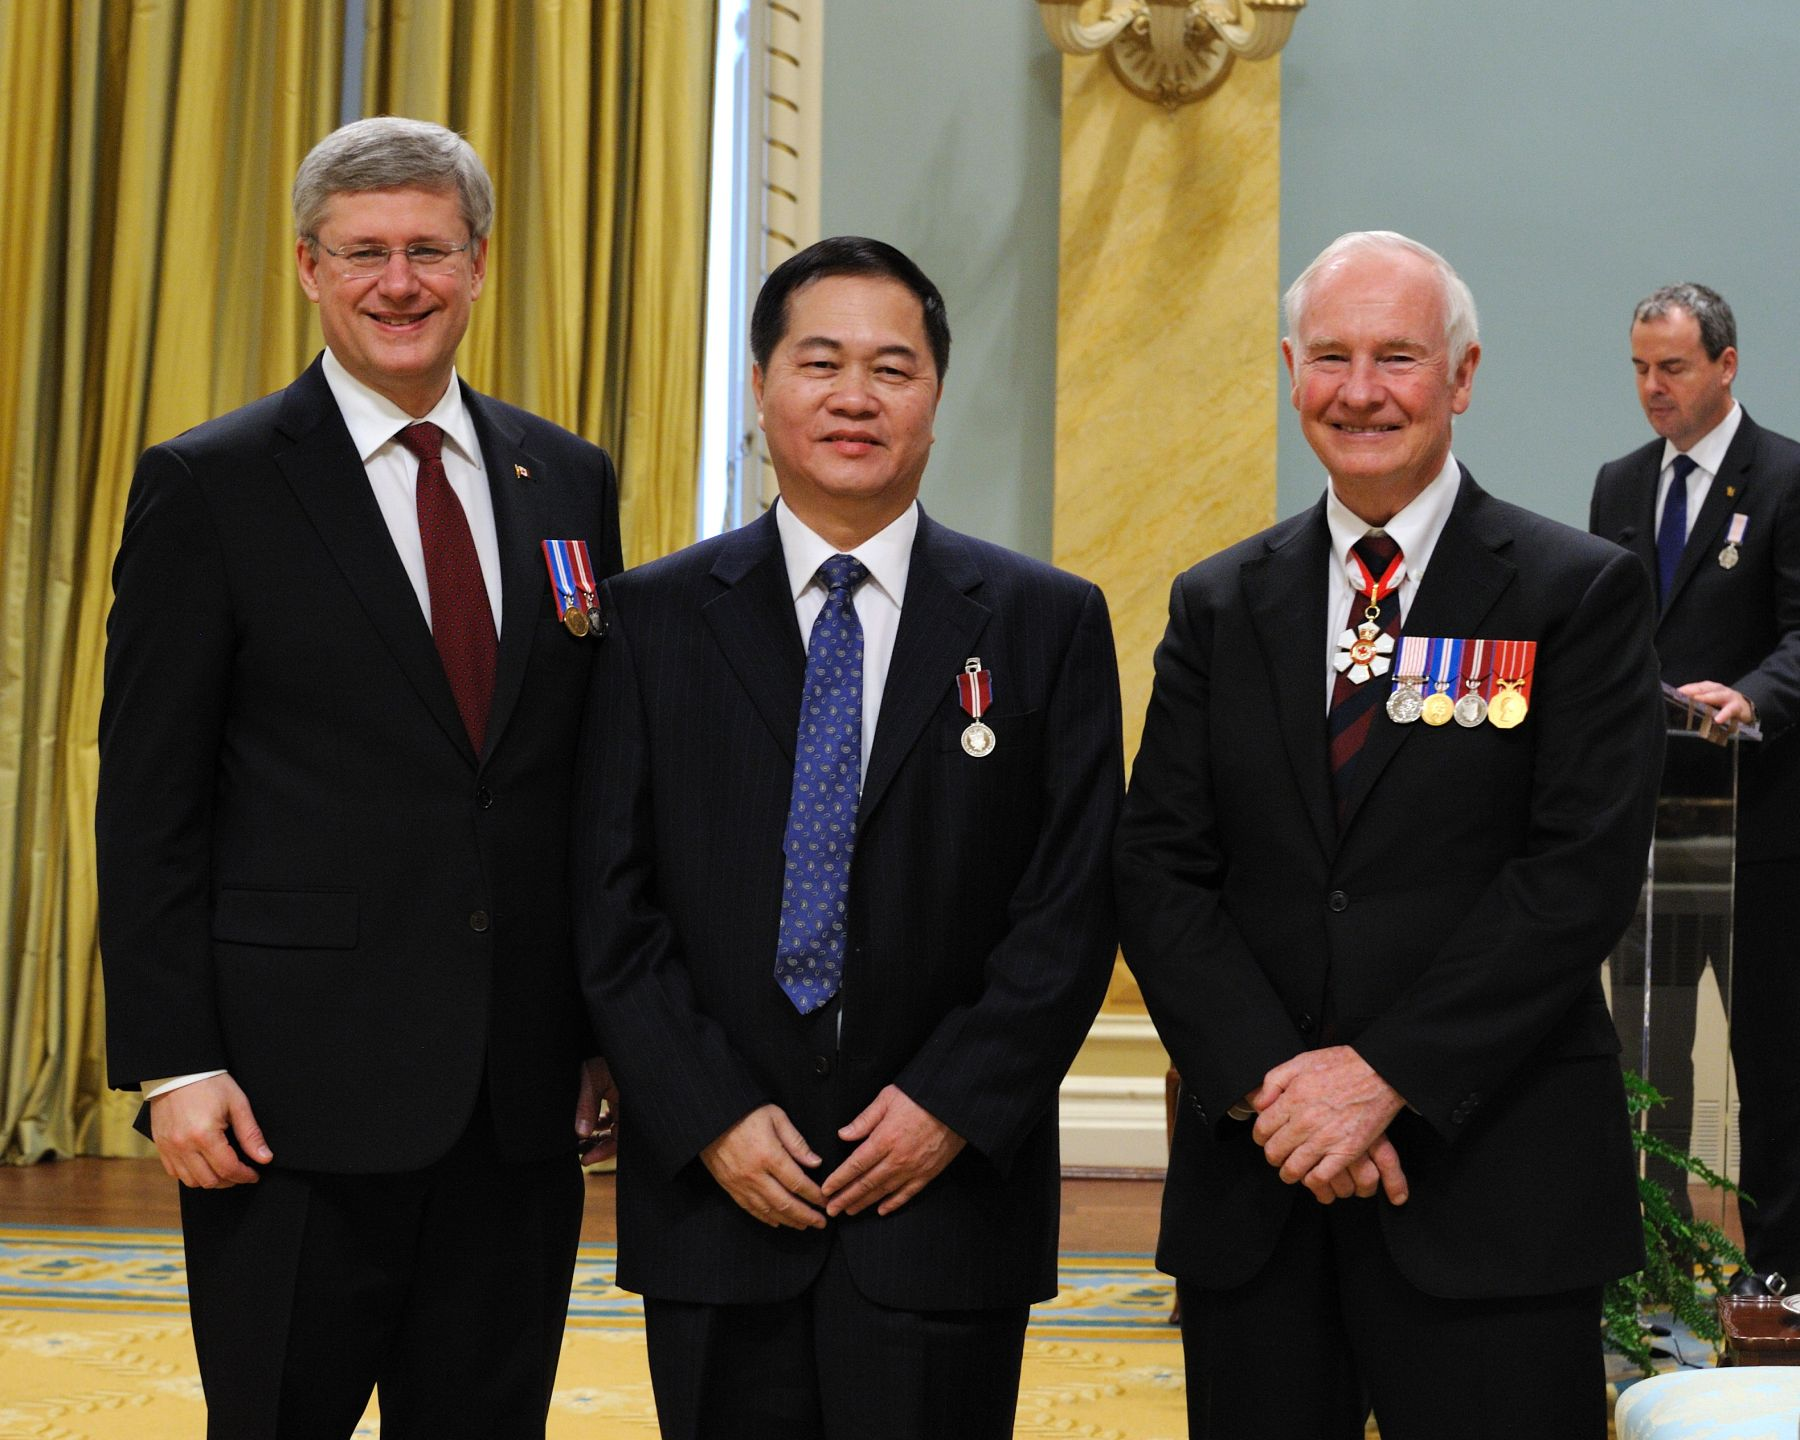 Xinsheng (Simon) Zhong (Toronto, Ontario) was recognized for offering services to new immigrants and for promoting Chinese culture in Toronto.